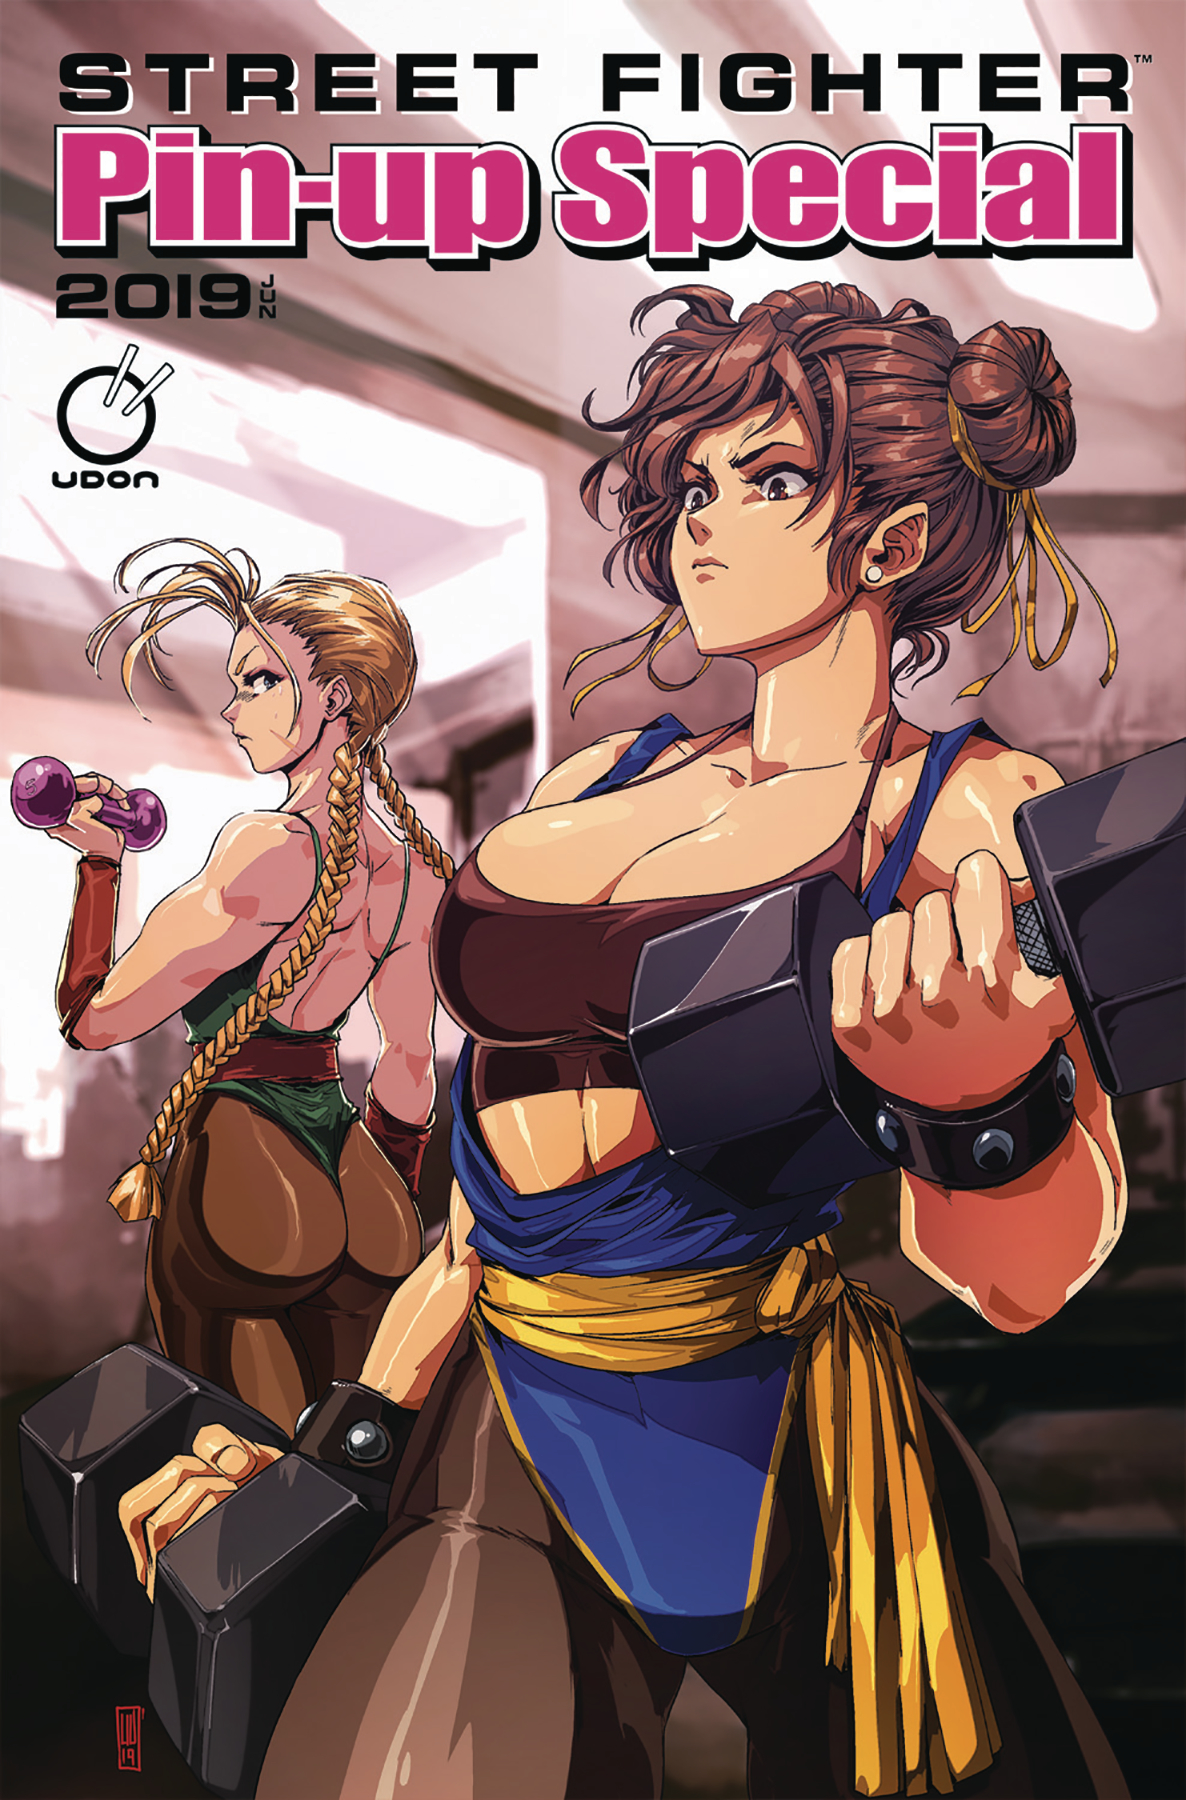 Street Fighter 2019 Pin-Up Special no. 1 (2019)